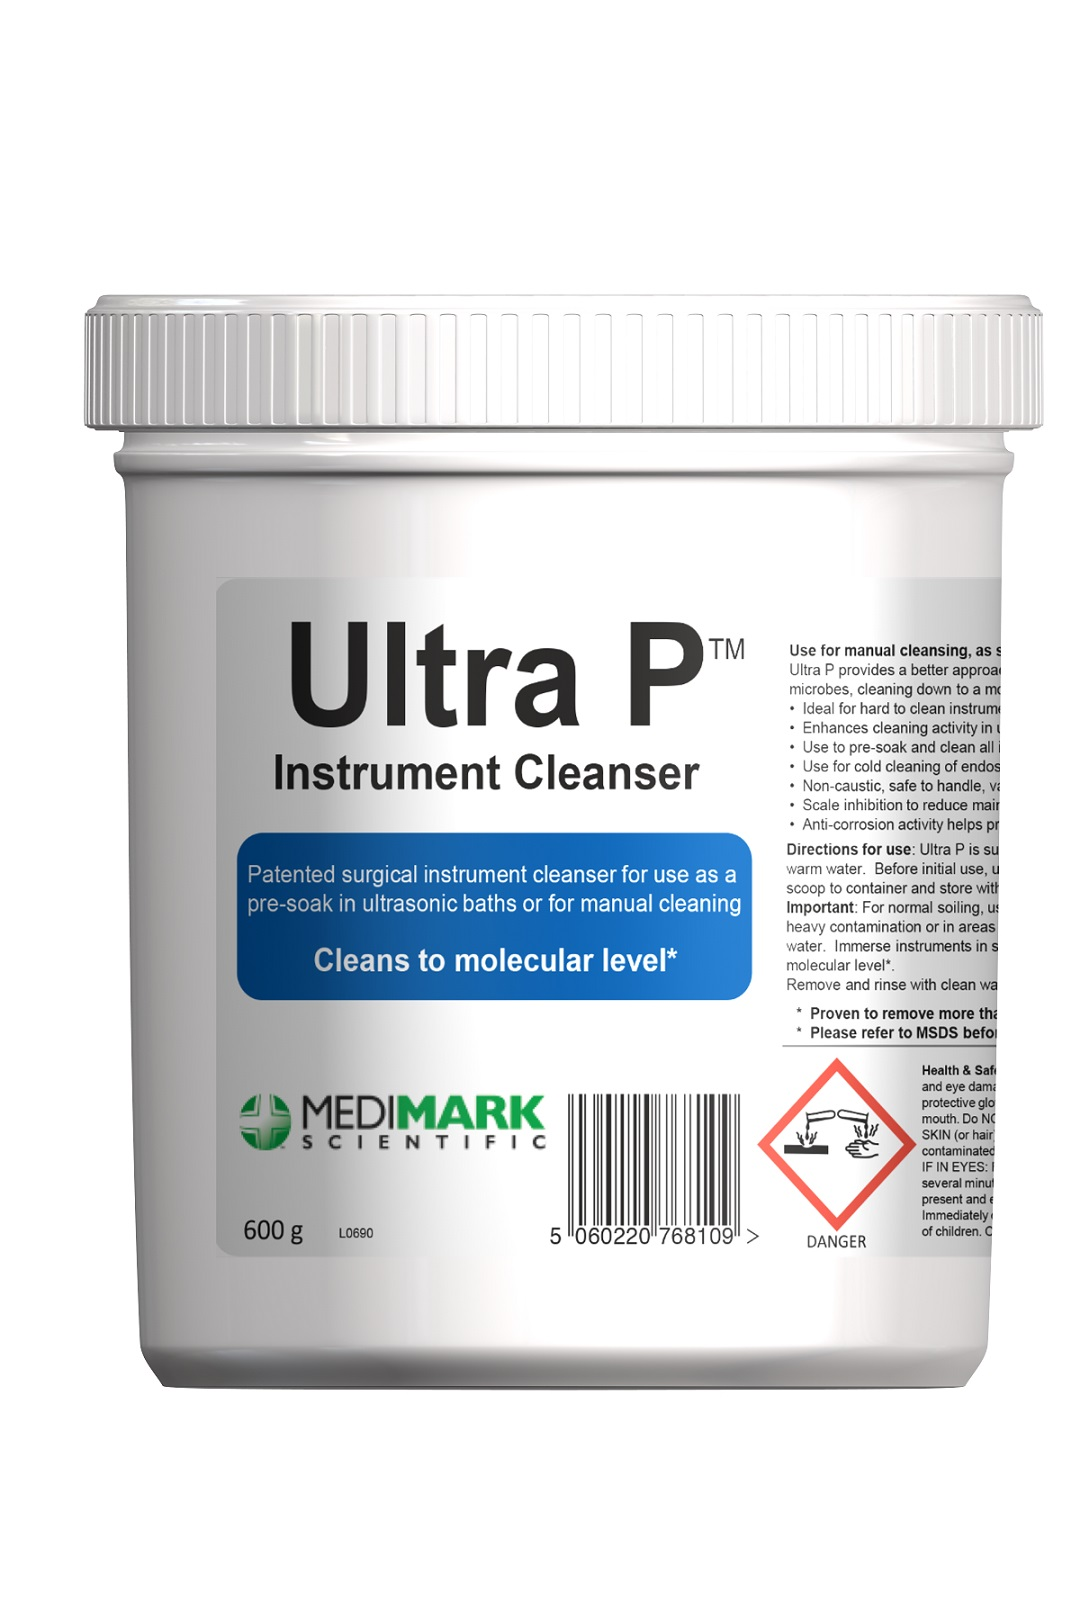 ULTRA P Instrument Cleaner